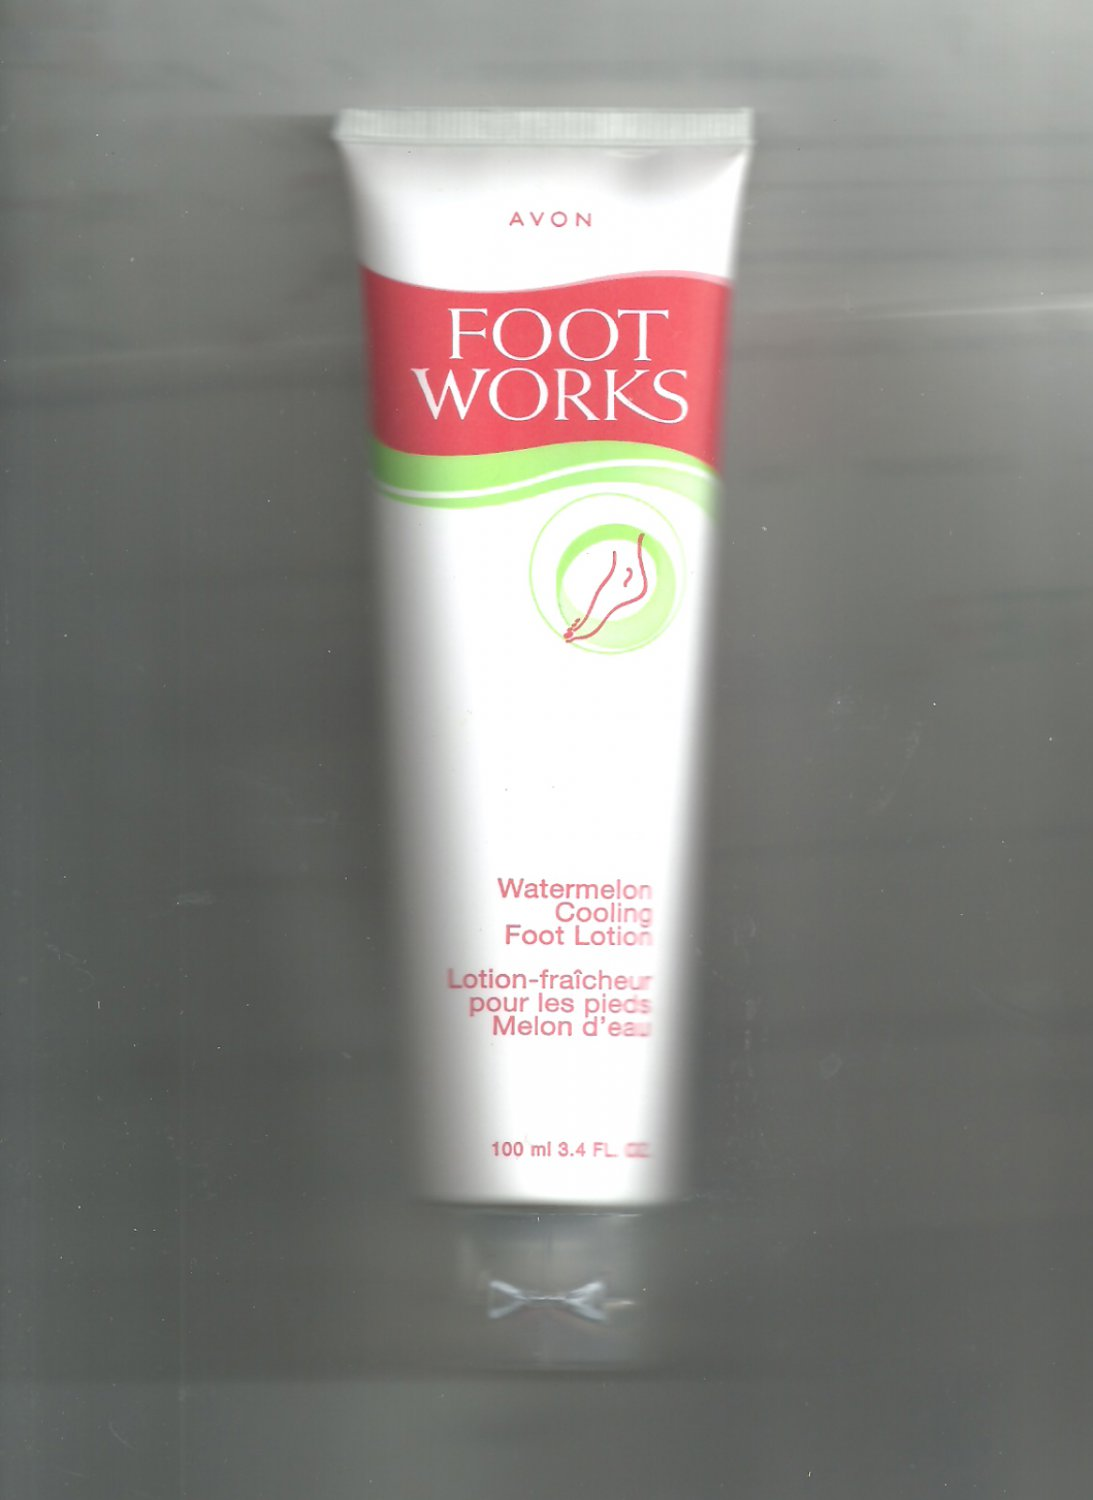 2 Avon Foot Works Watermelon Cooling Foot Lotion   -Vintage